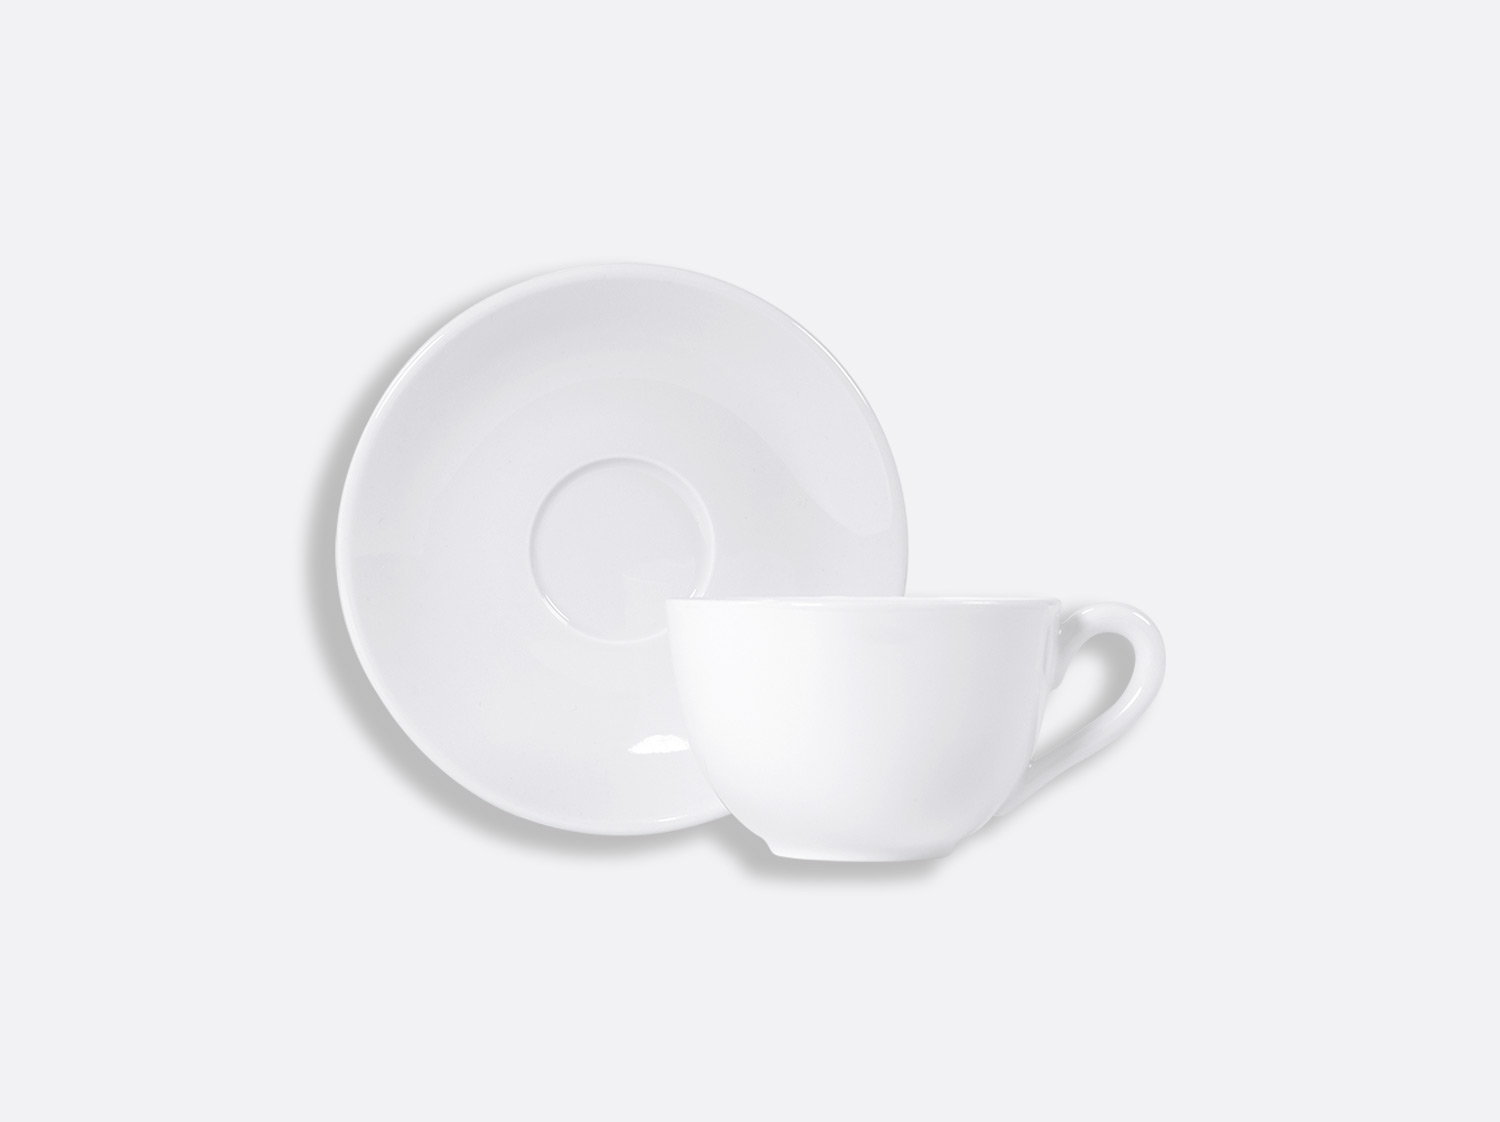 China Teacup extra 20 cl of the collection Provence blanc | Bernardaud